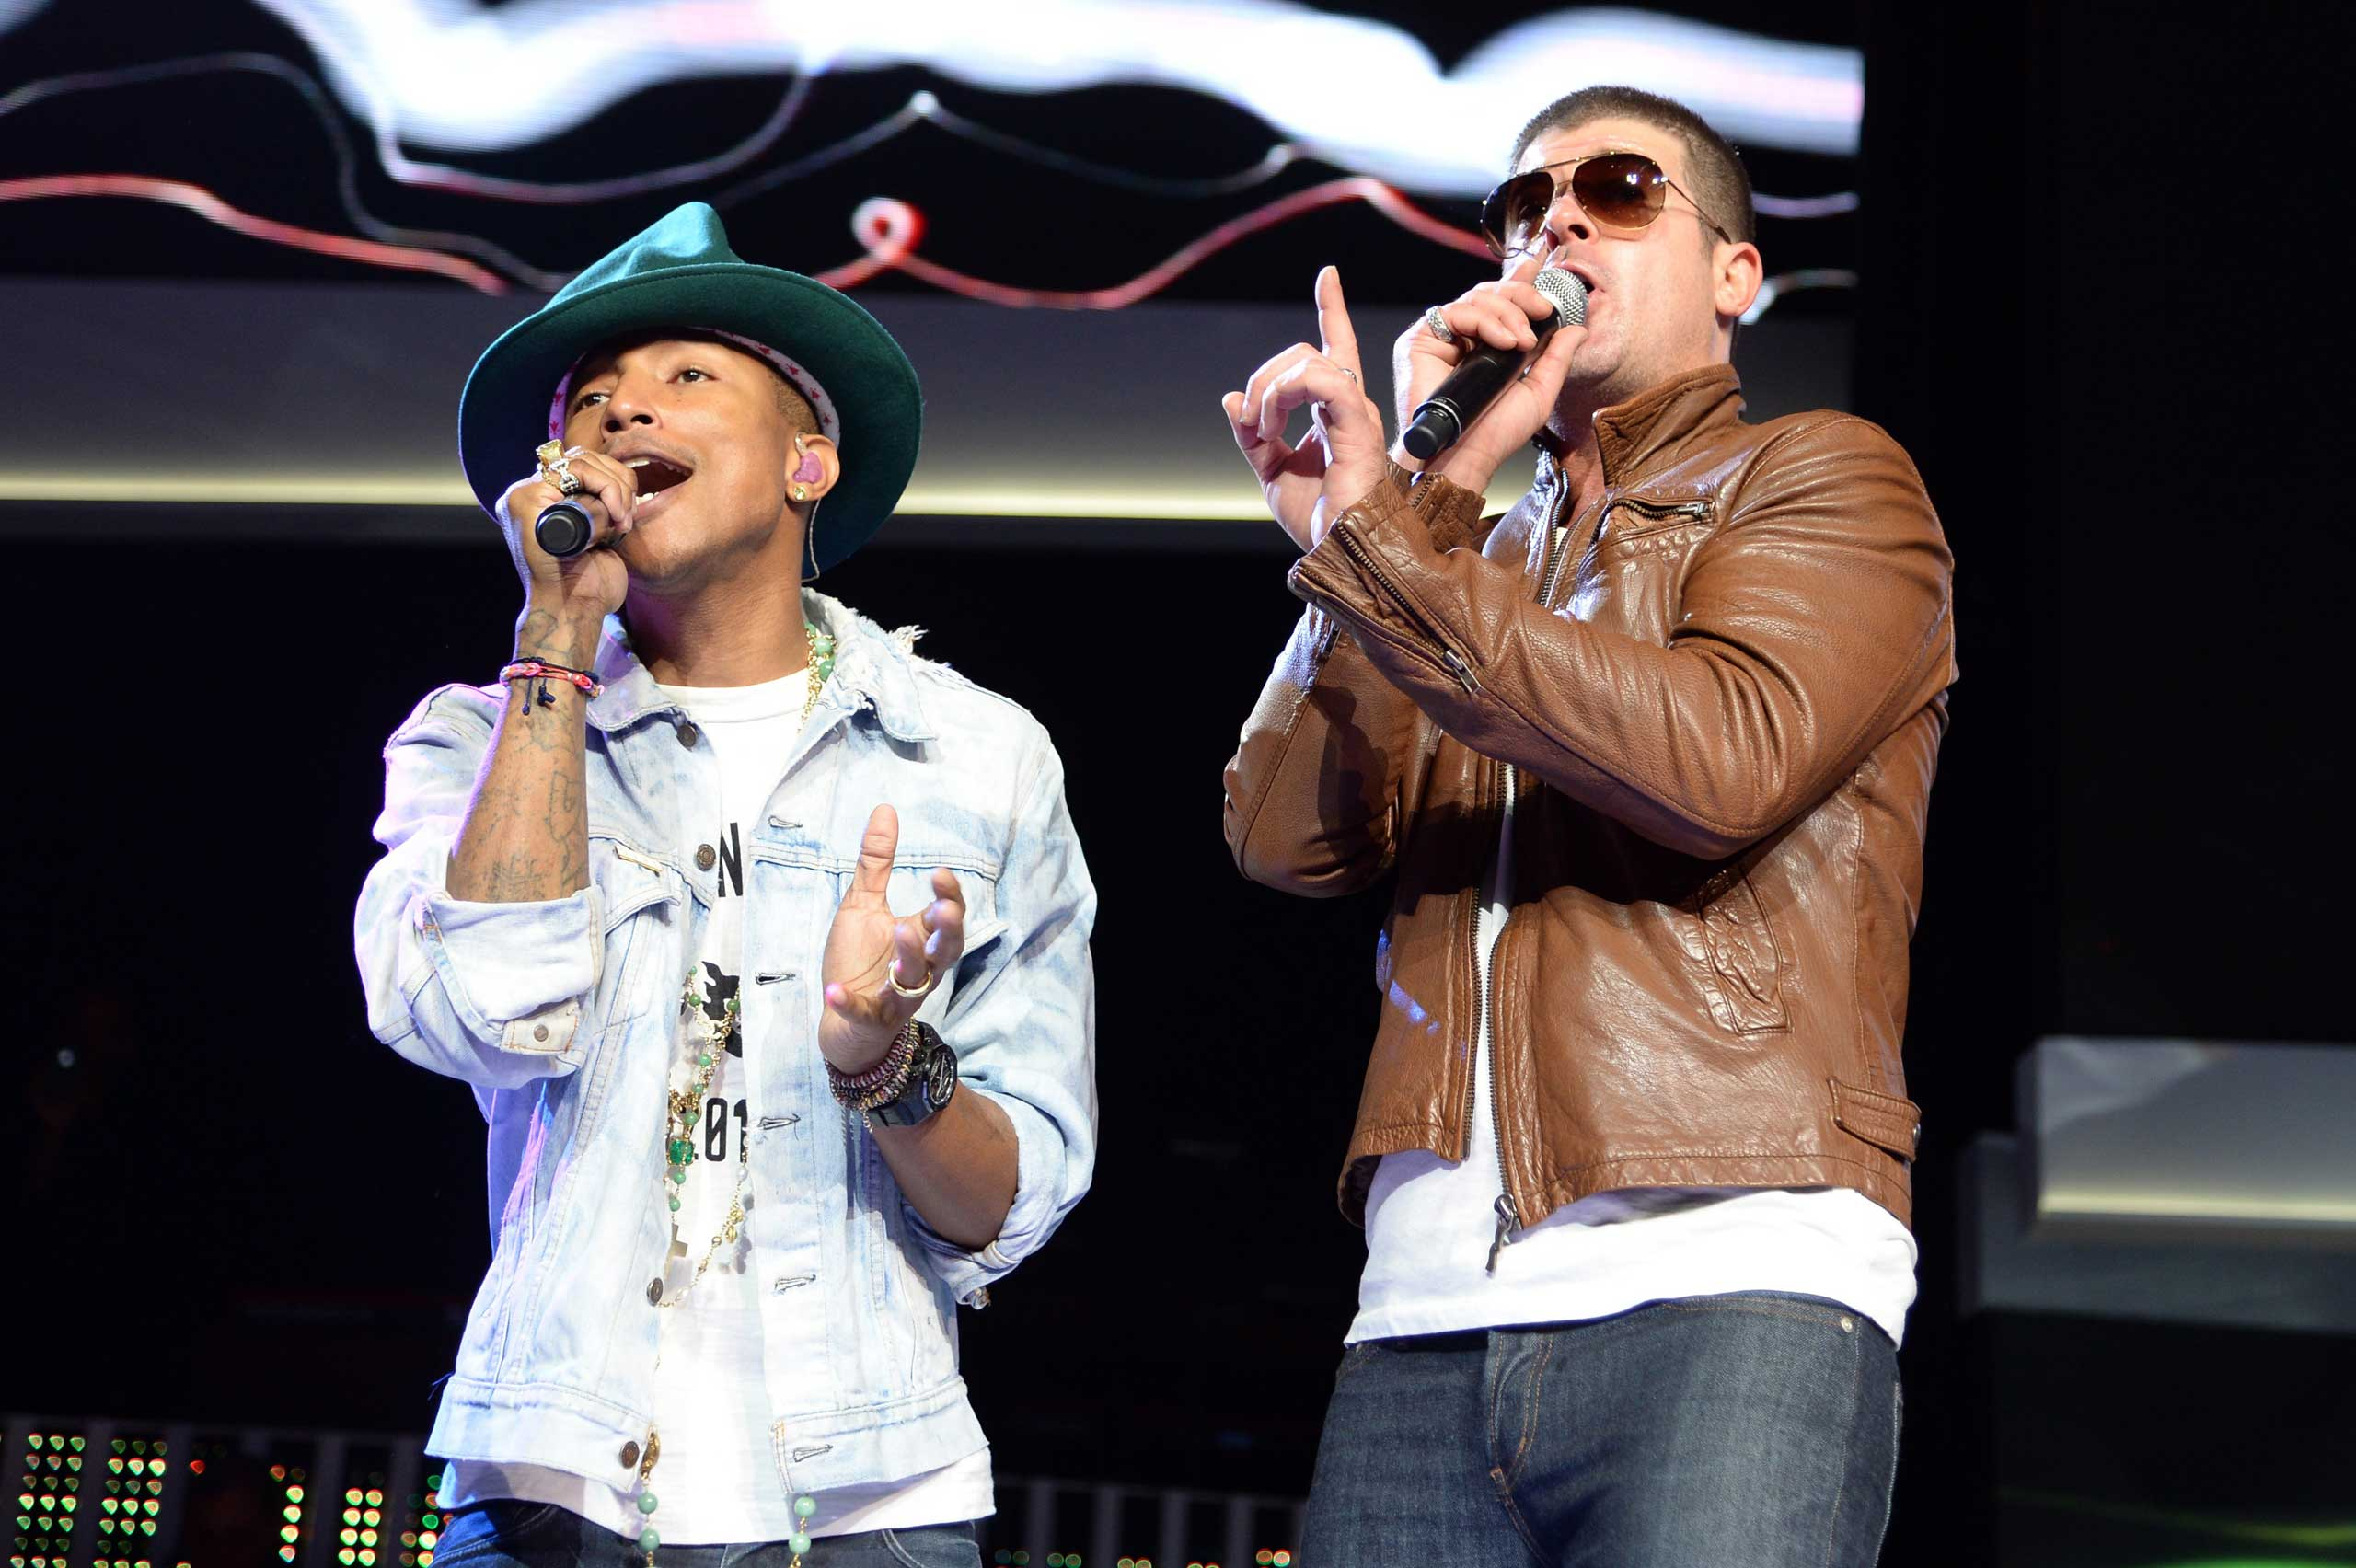 Pharrell Williams and Robin Thicke perform during the Walmart 2014 annual shareholders meeting at Bud Walton Arena at the University of Arkansas in Fayetteville, Ark. on June 6, 2014